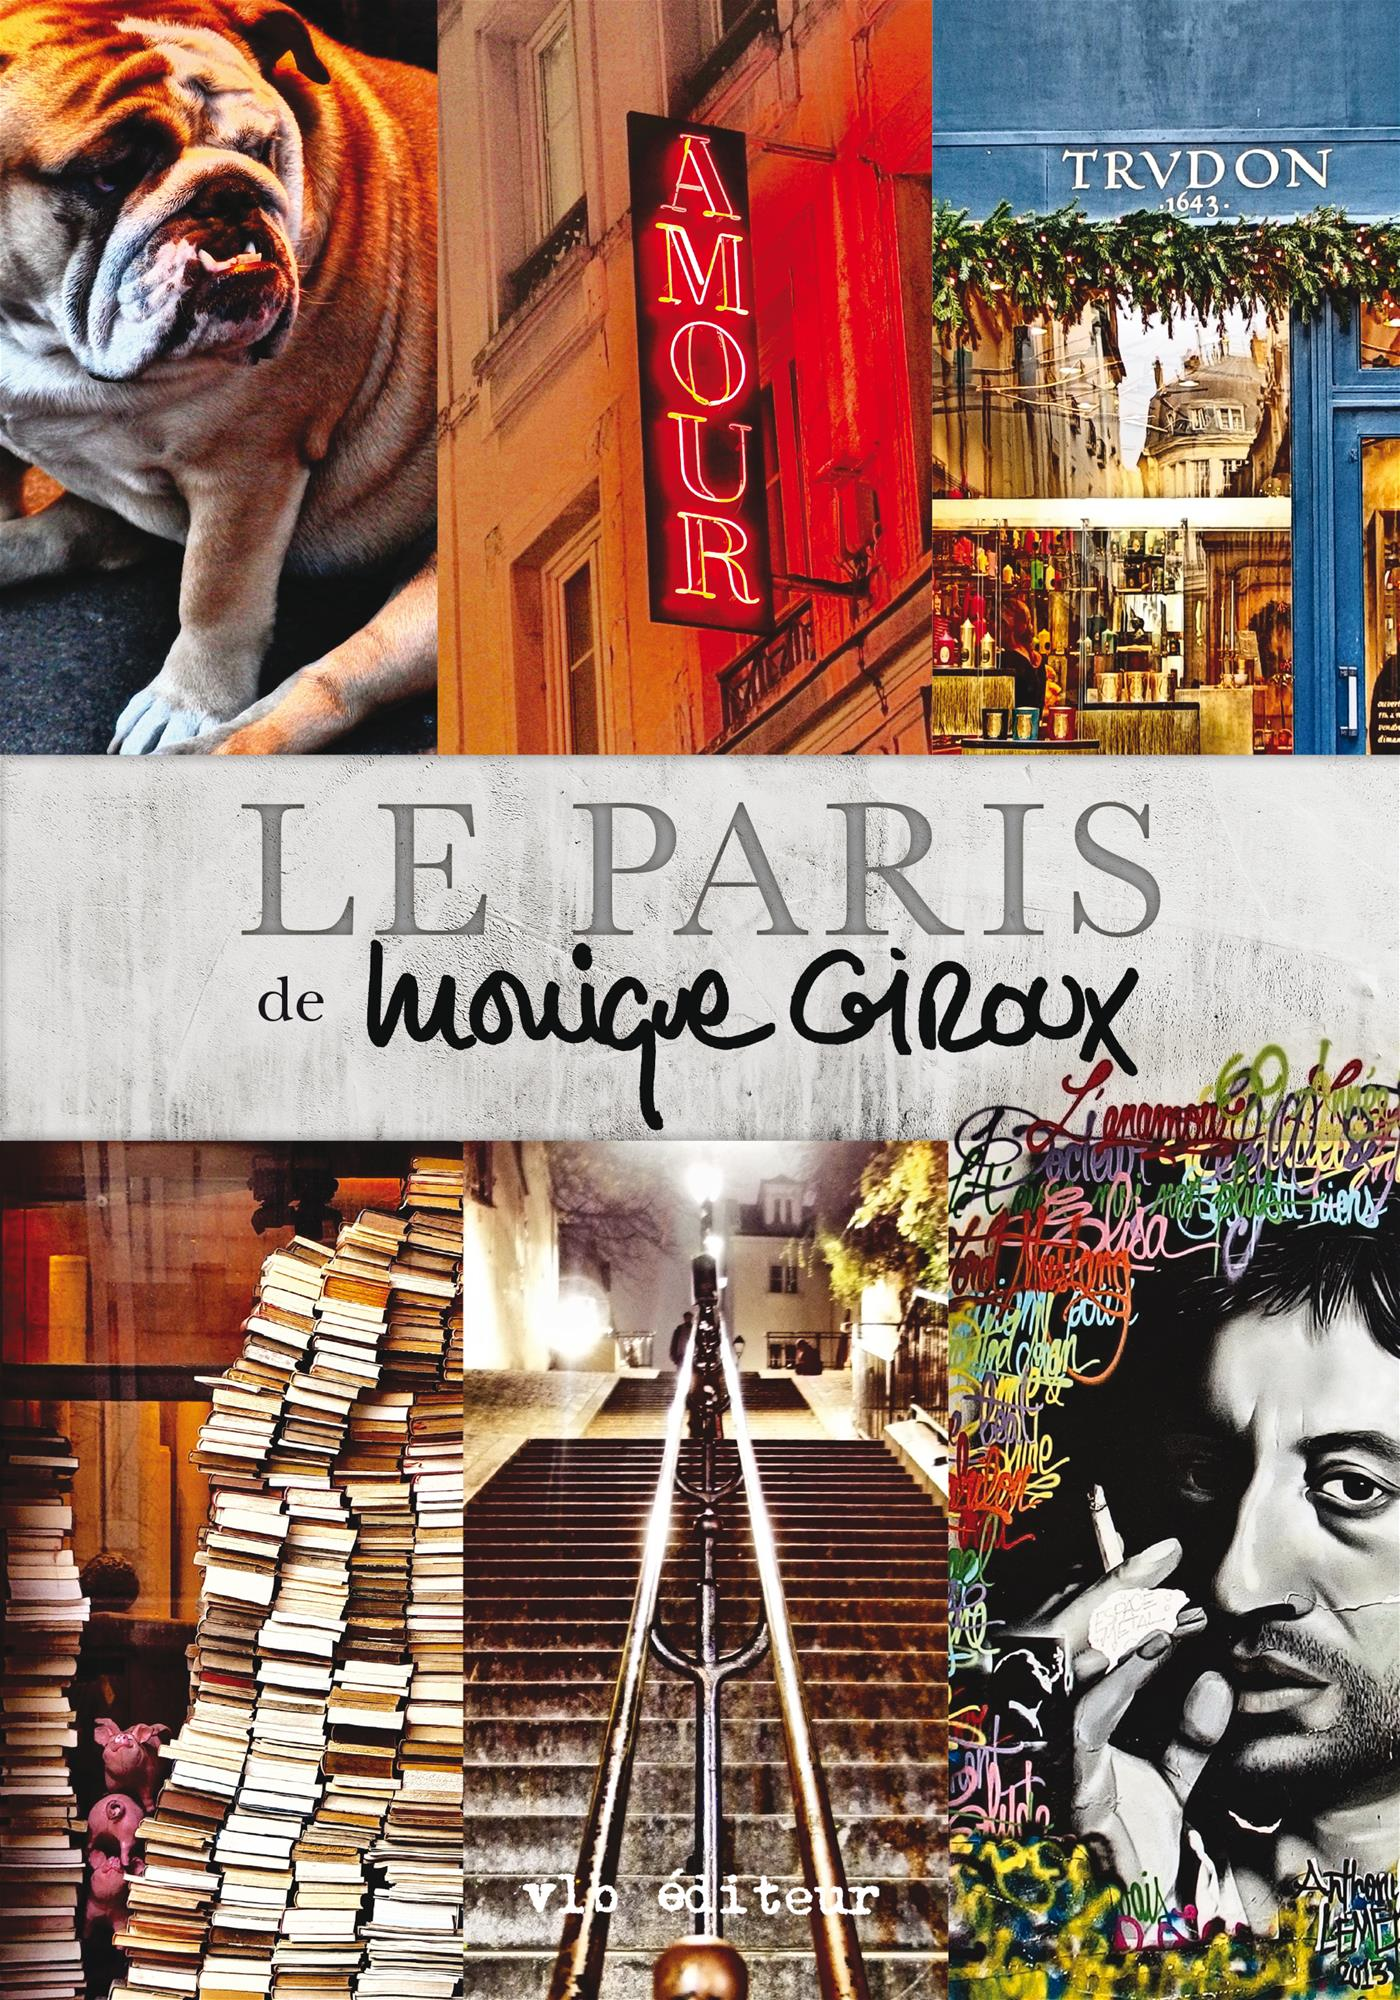 Le Paris de Monique Giroux